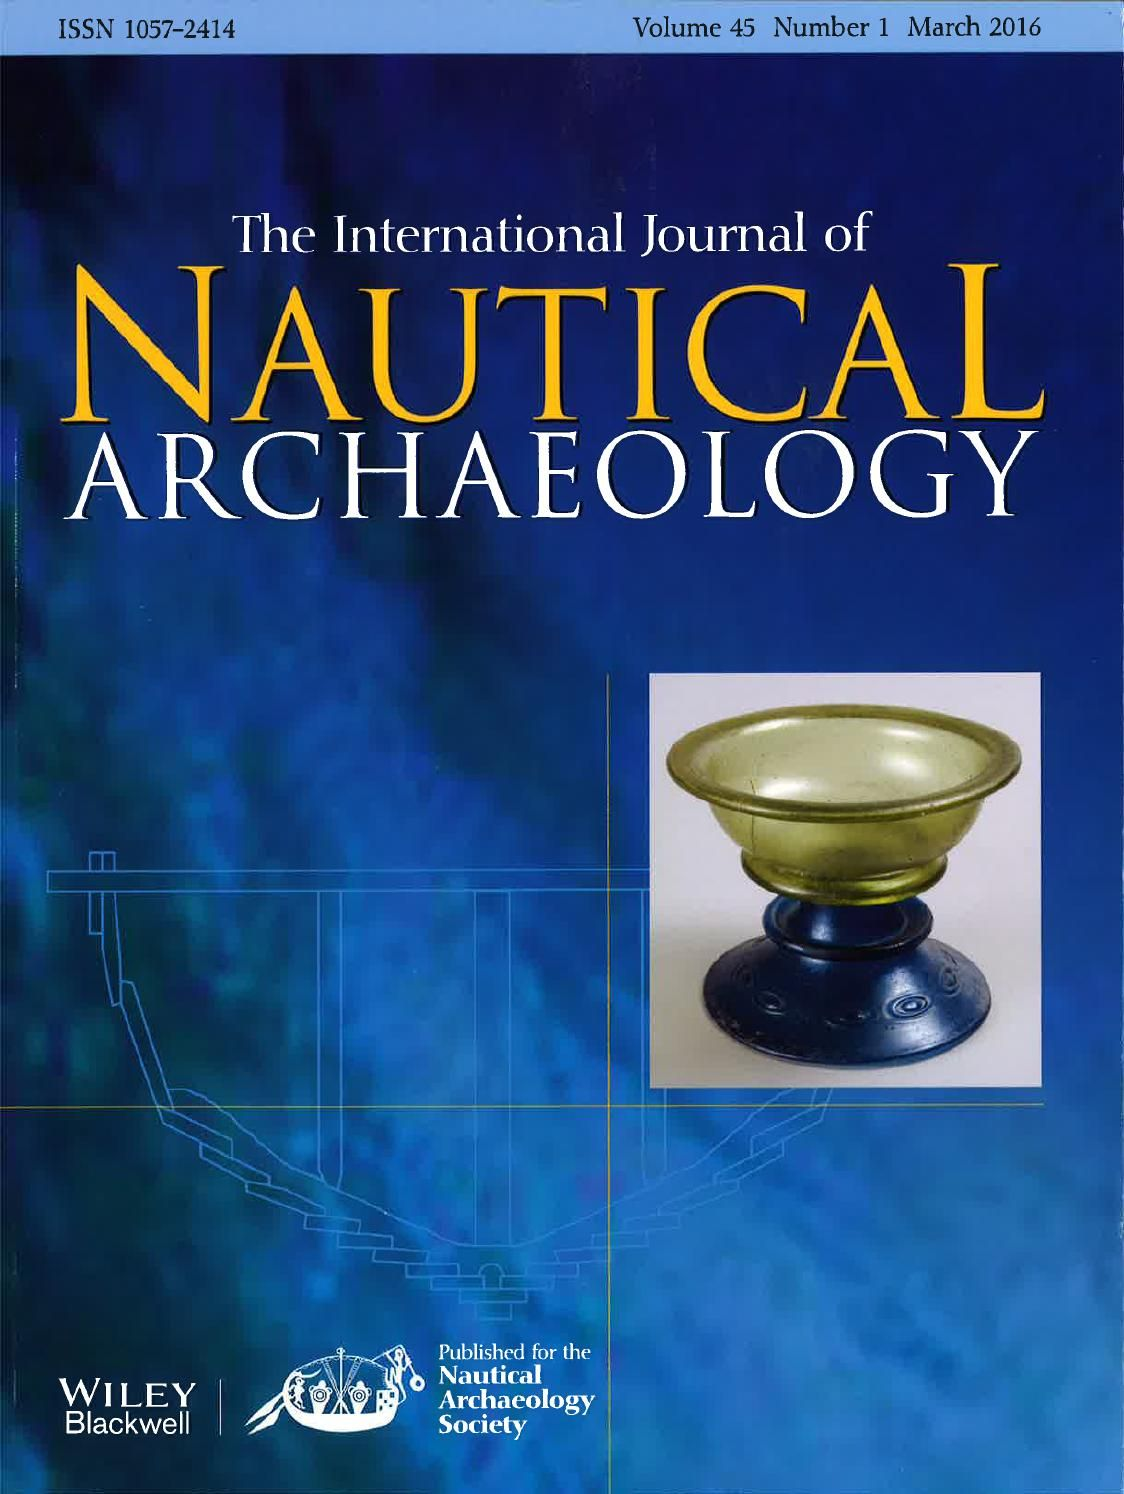 Image result for international journal of nautical archaeology cover